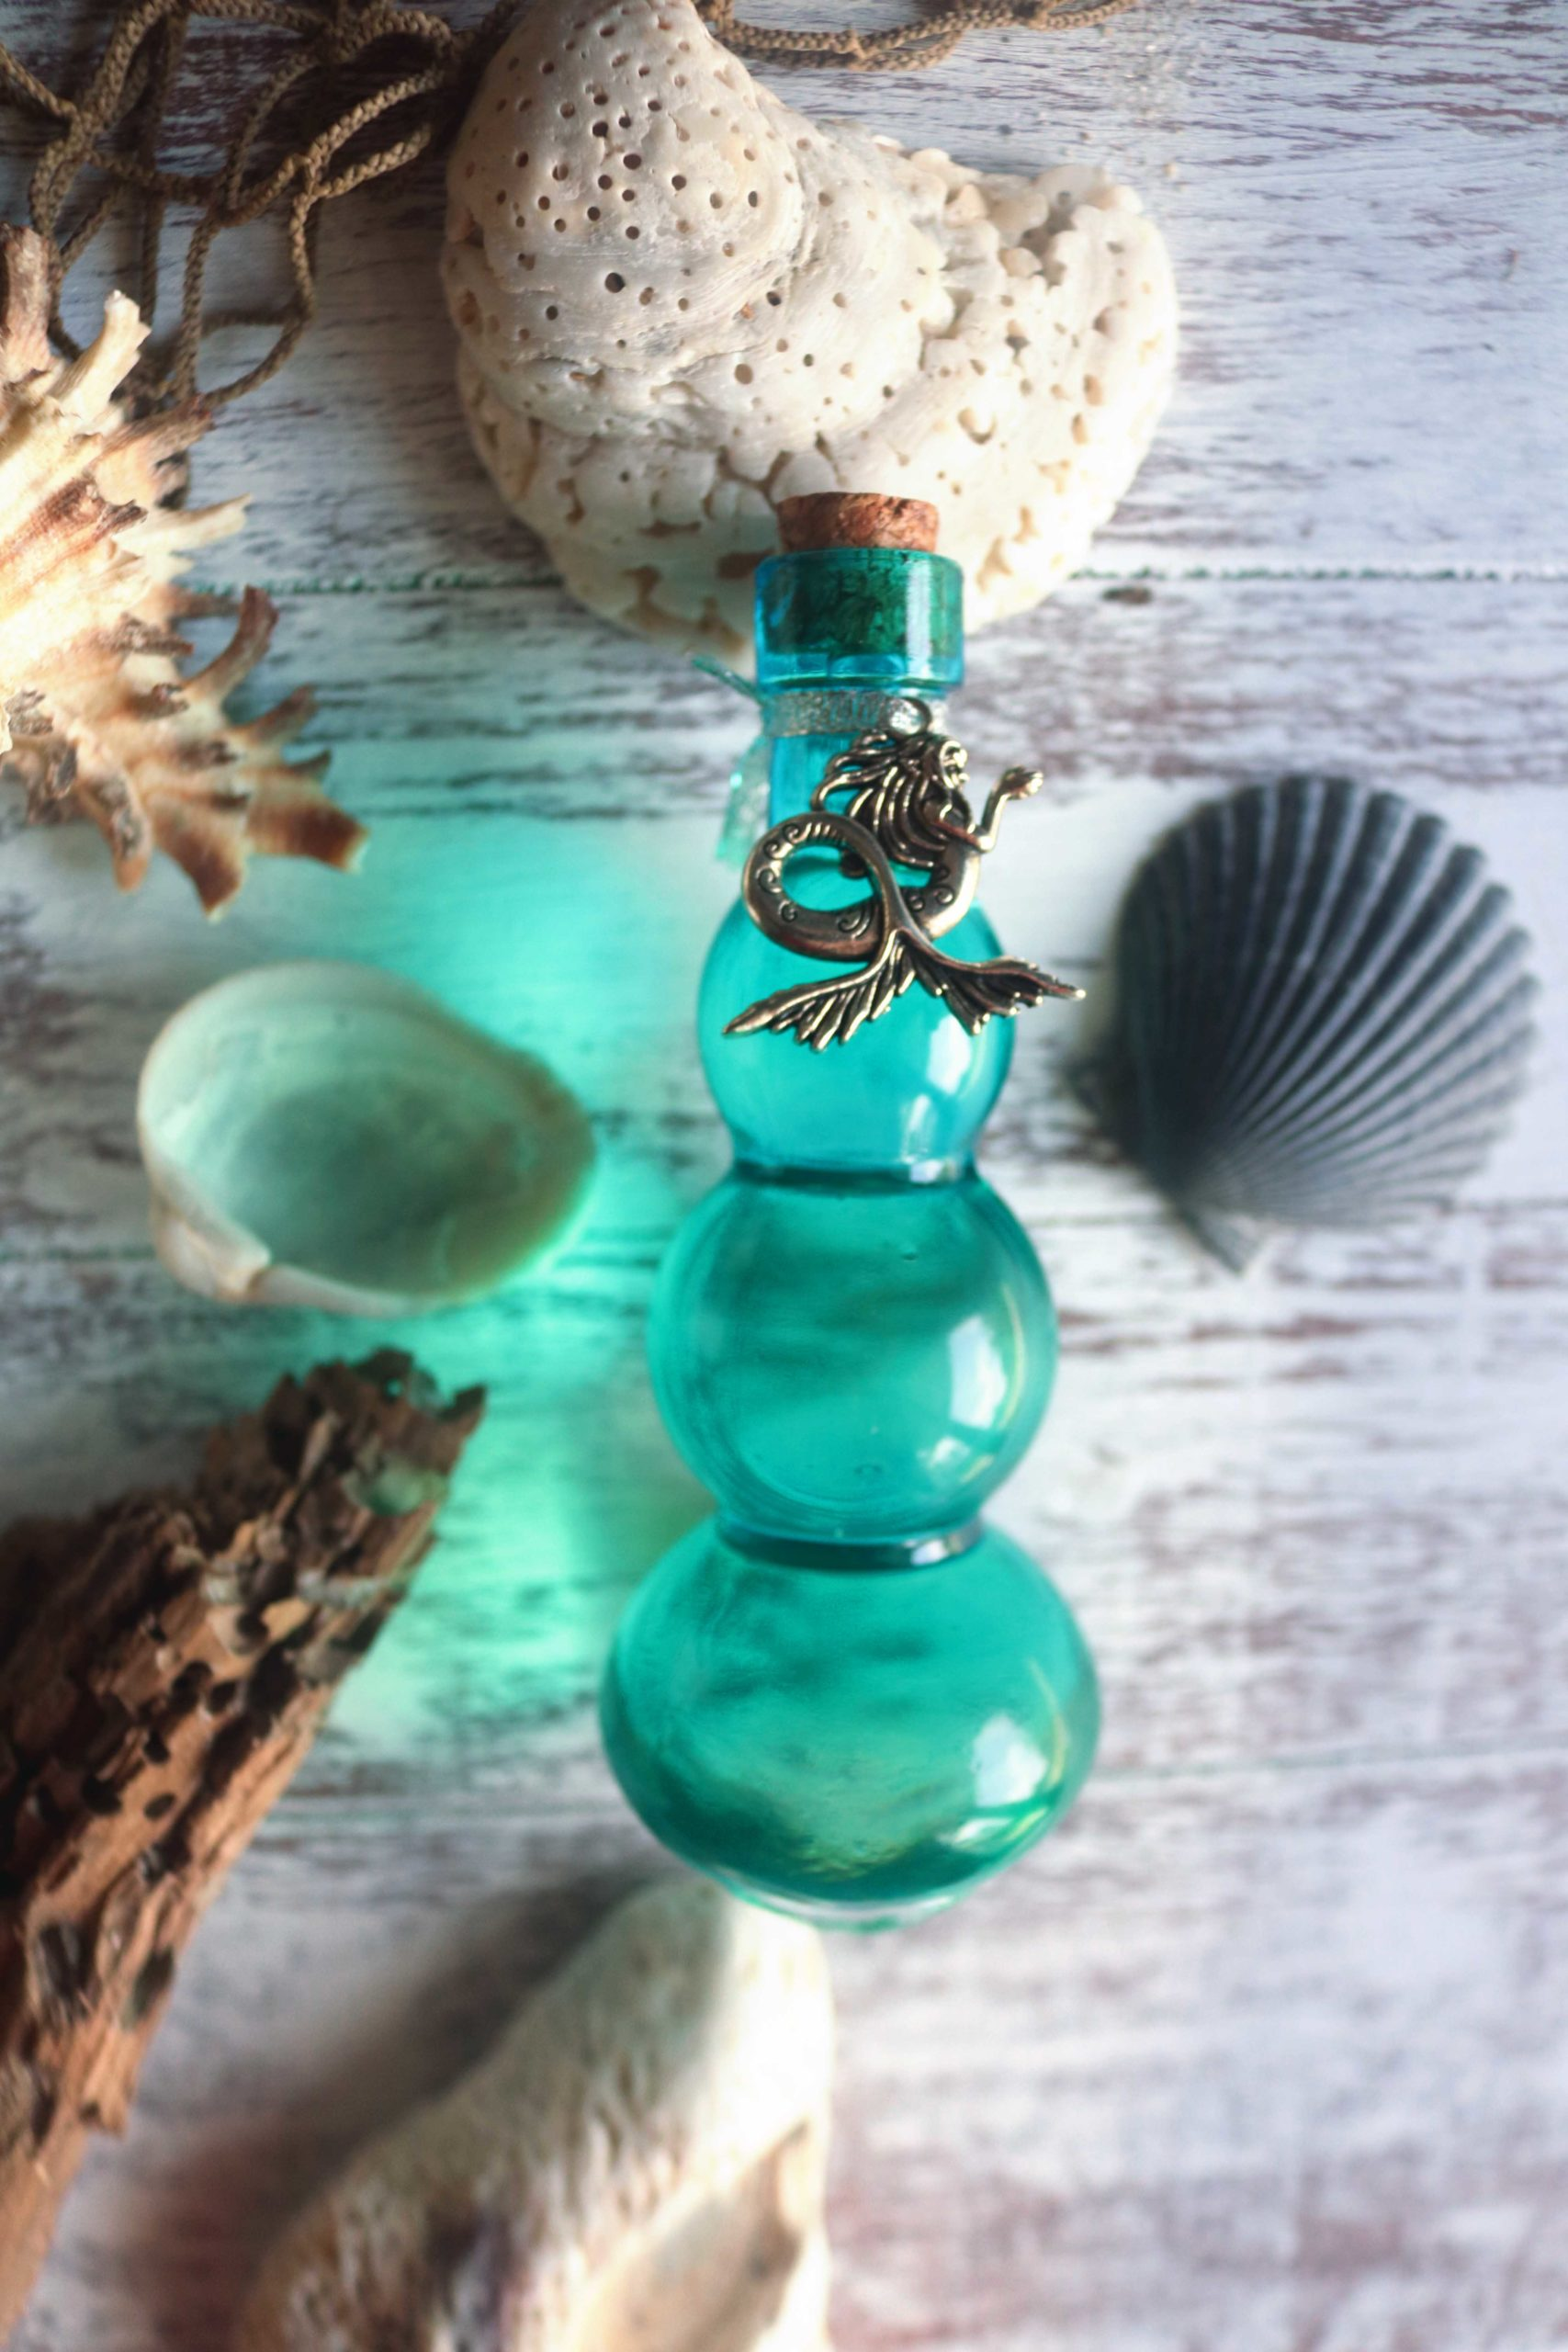 Sea witch ritual mermaid oil for evoking the Element of Water.